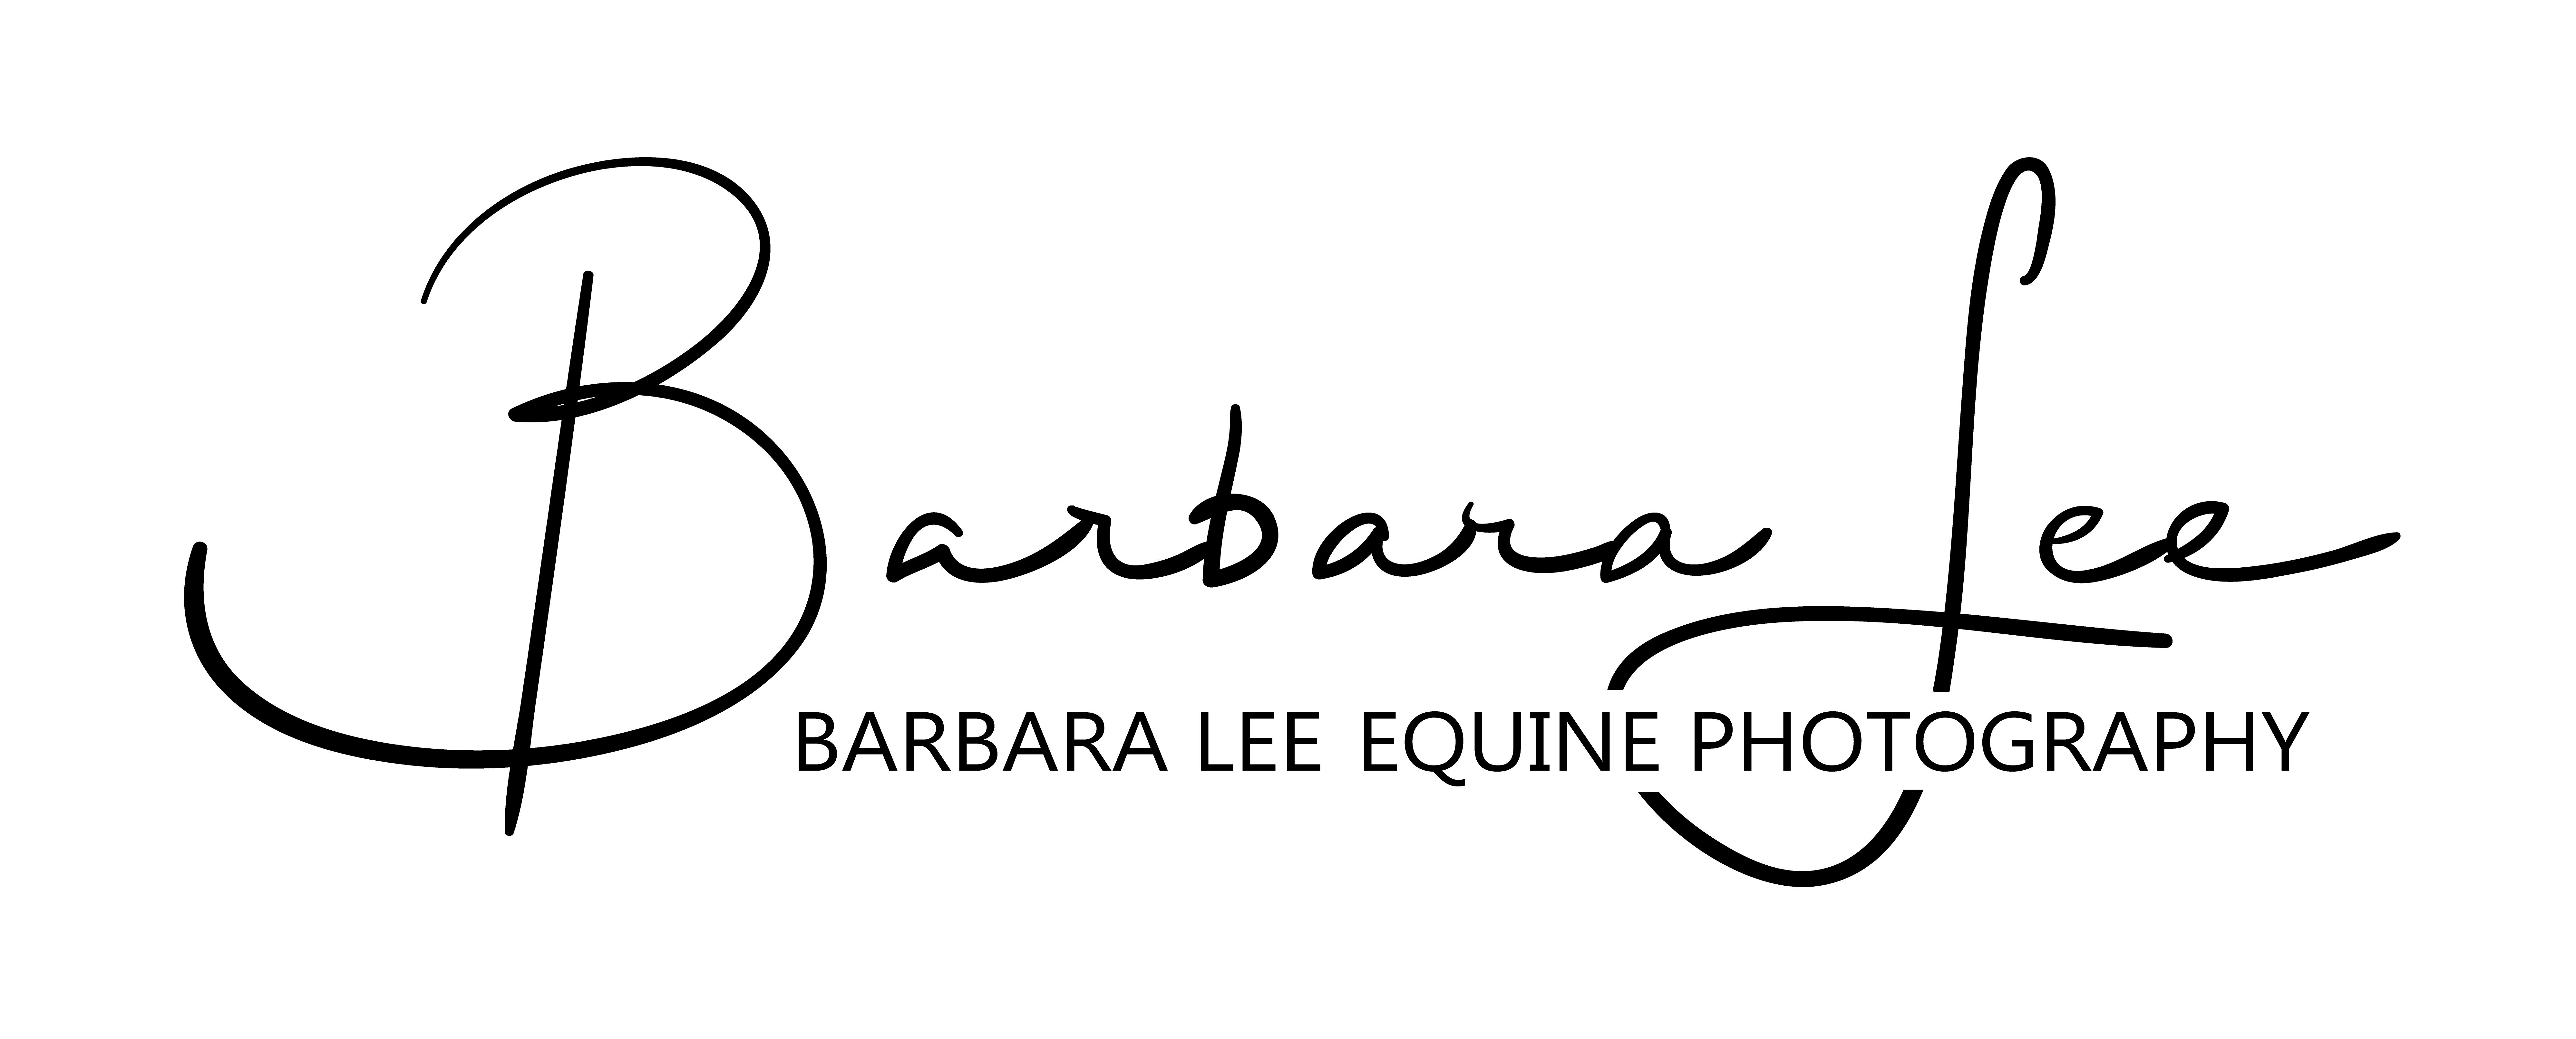 Barbara Lee Equine Photography logo